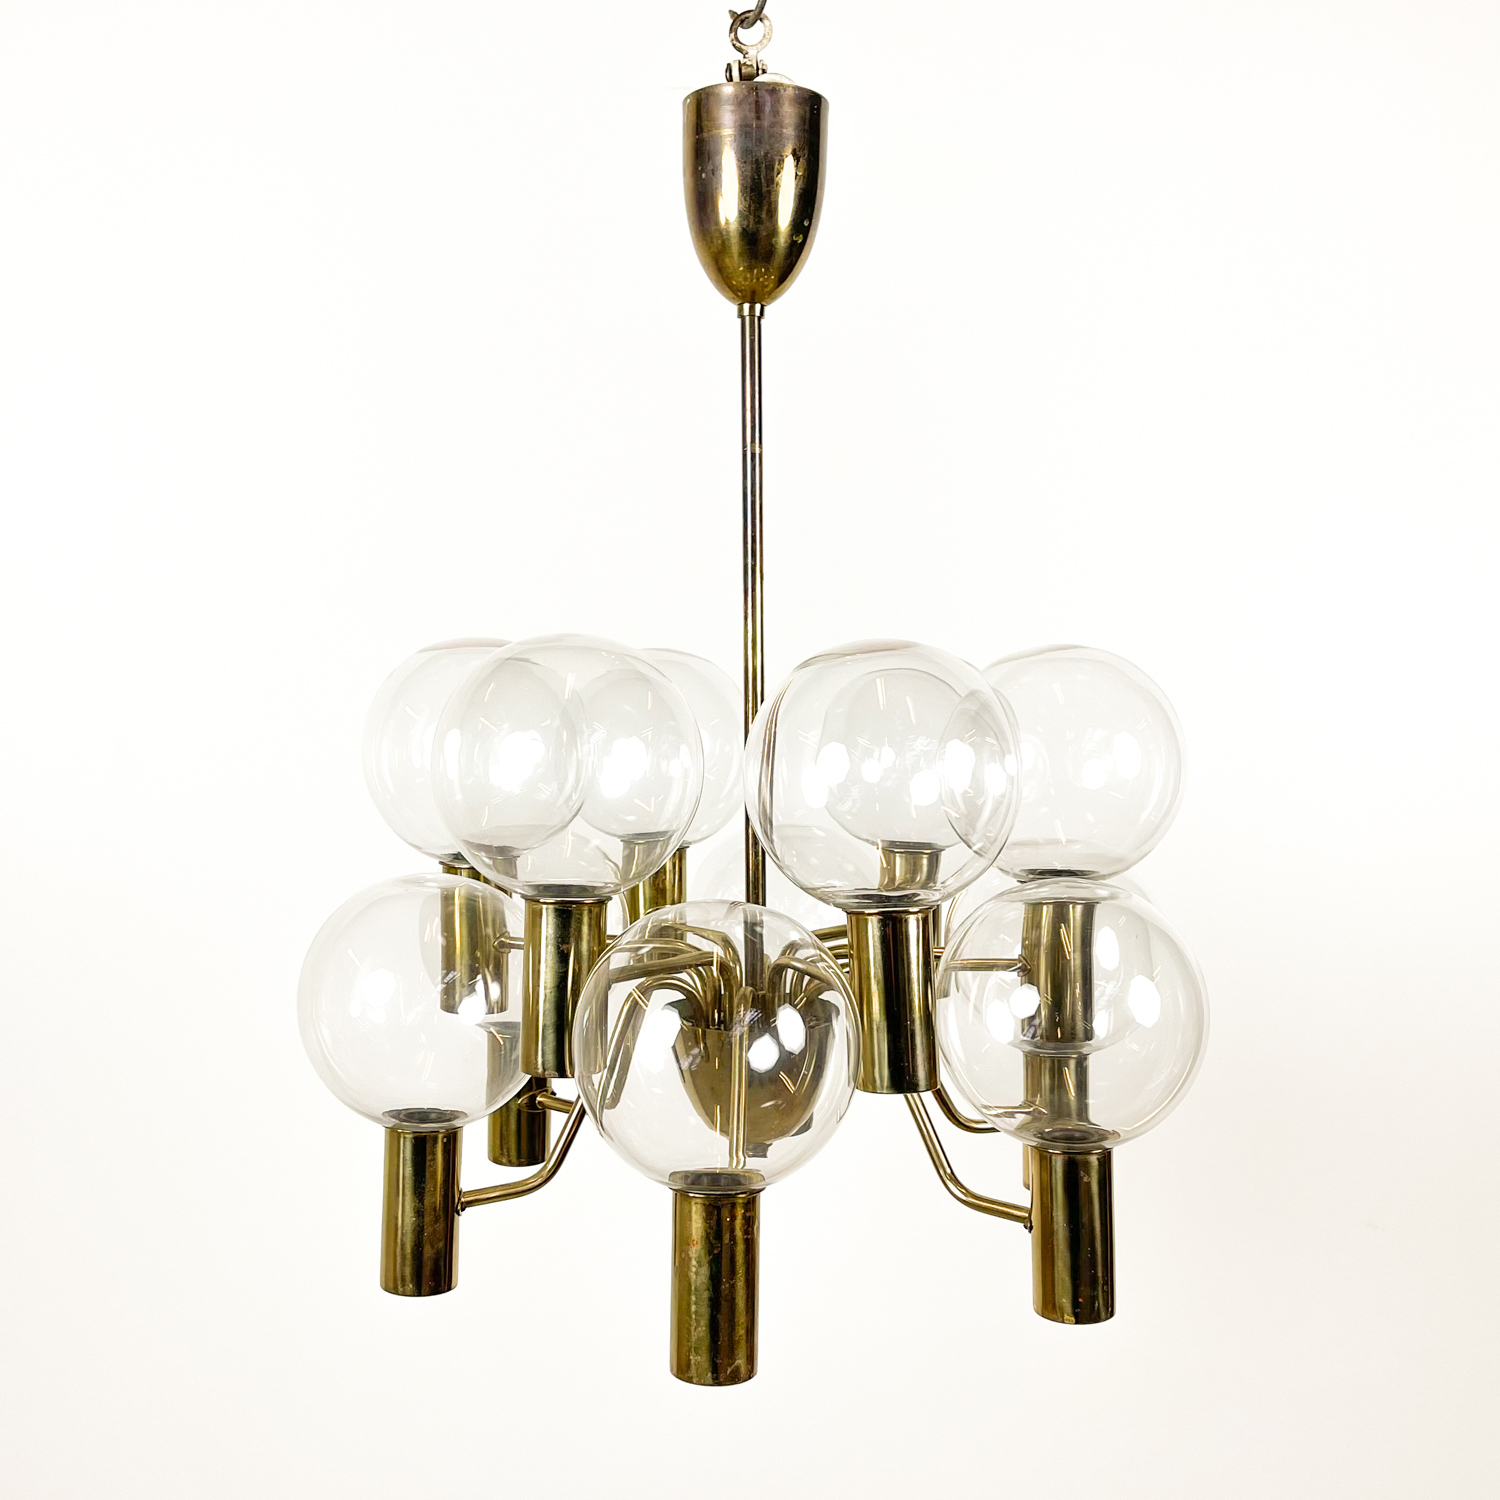 Hans agne Jakobsson chandelier model T372/12 Patricia clear glass